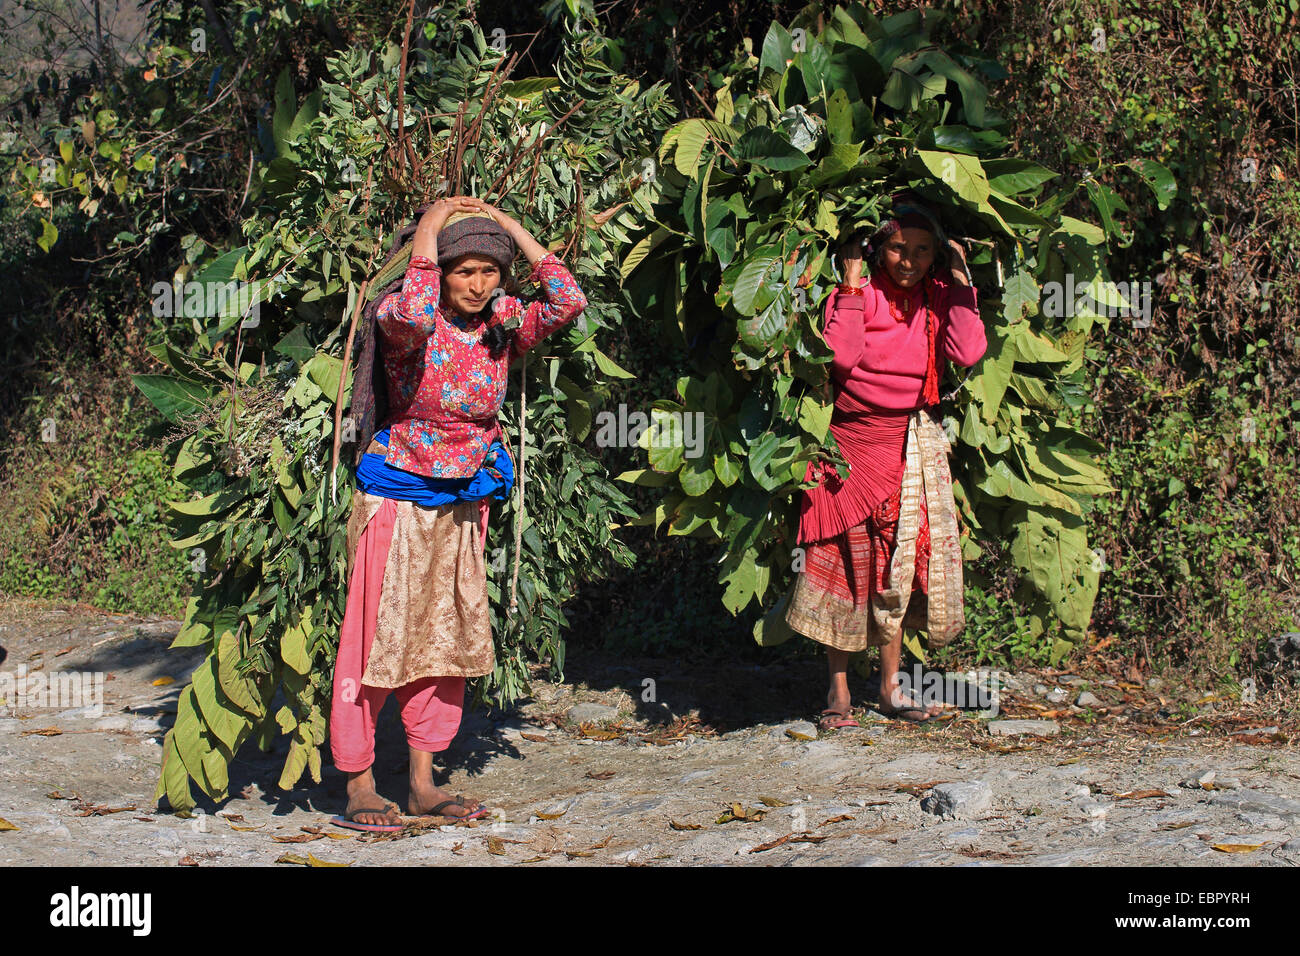 women carrying a plenty of feed for the domestic cattles, Nepal, Kathmandutal, Pokhara - Stock Image